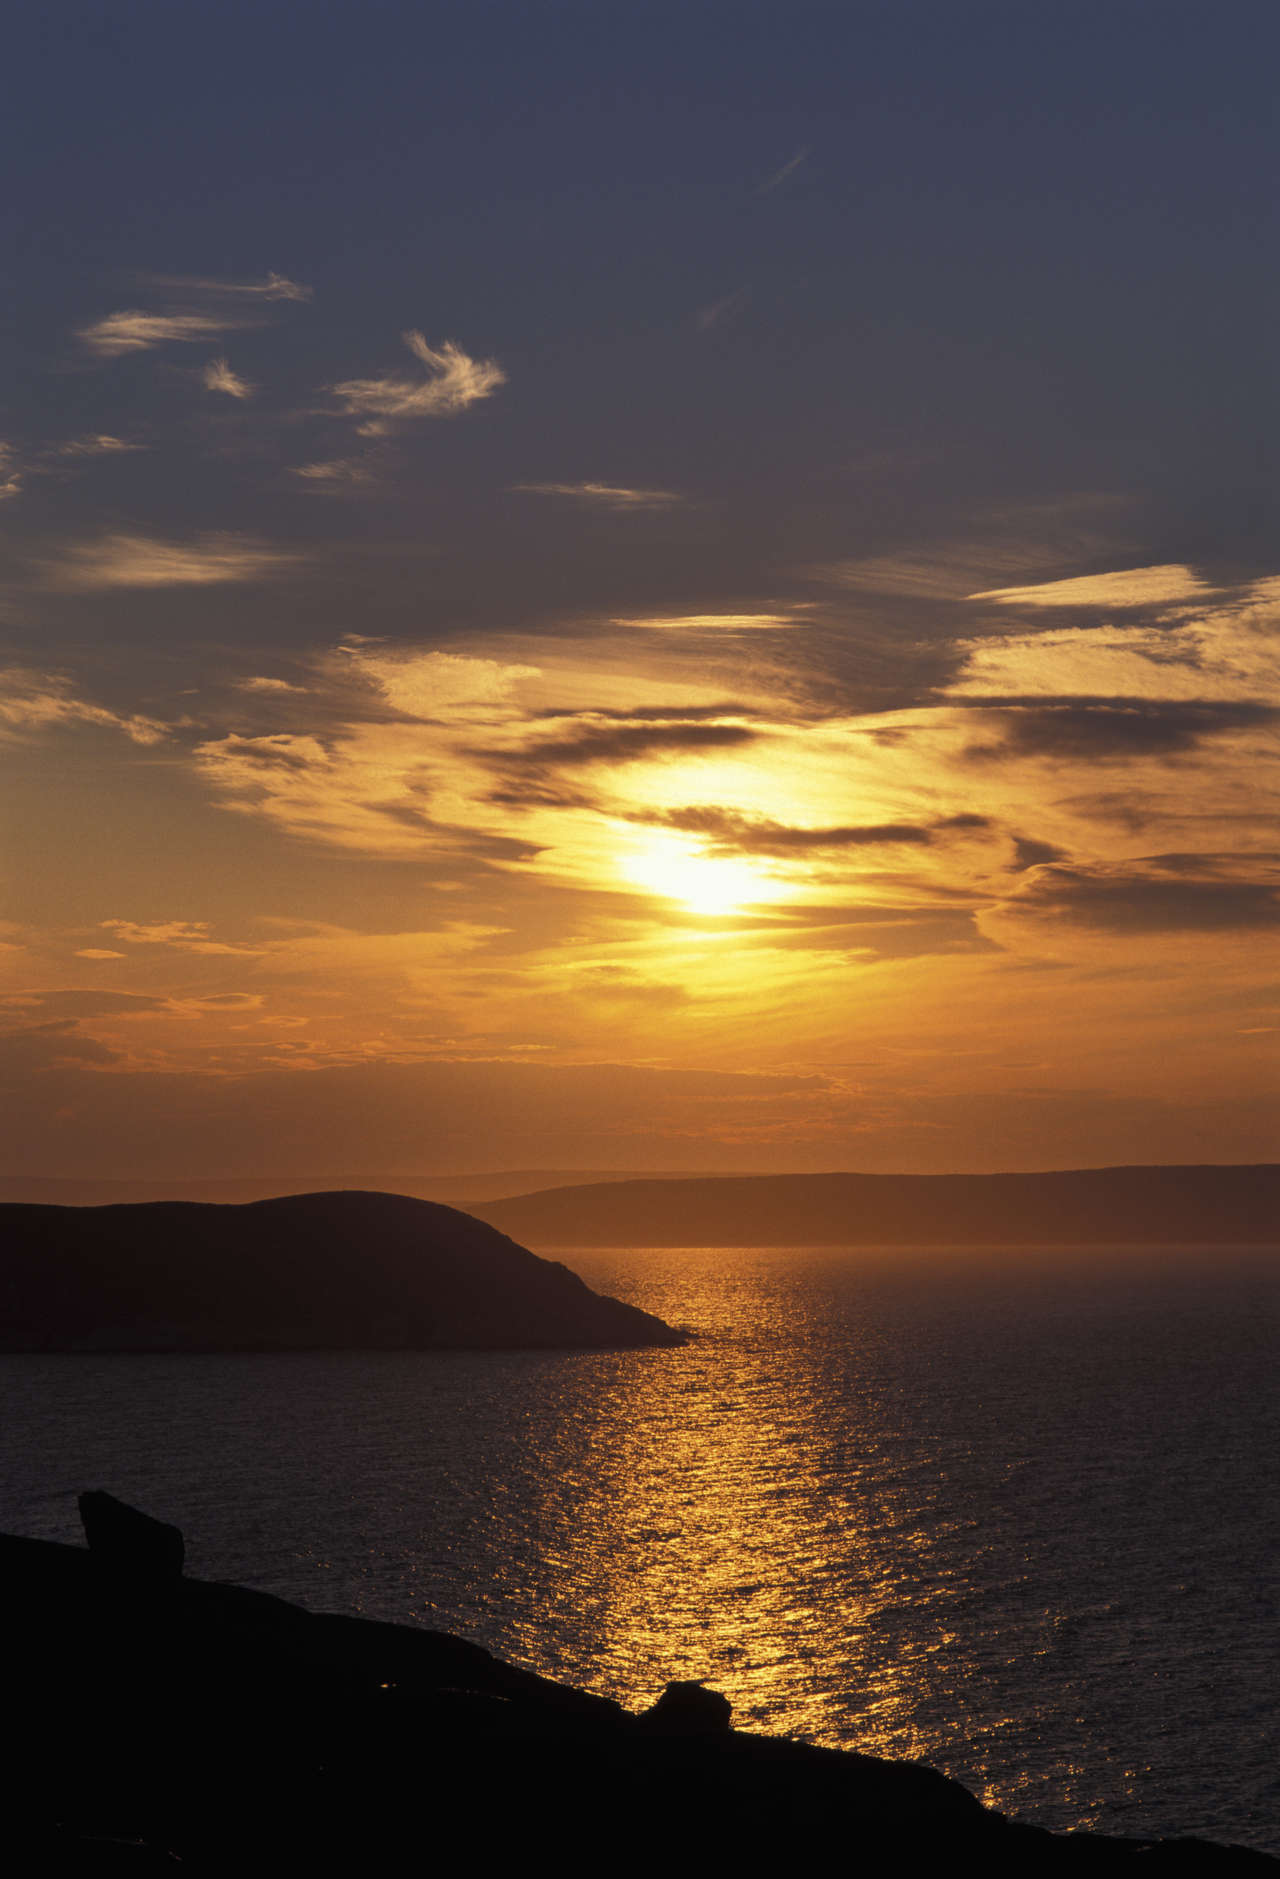 Midnight Sun at the reflecting in the sea at the North Cape © Trym Ivar Bergsmo